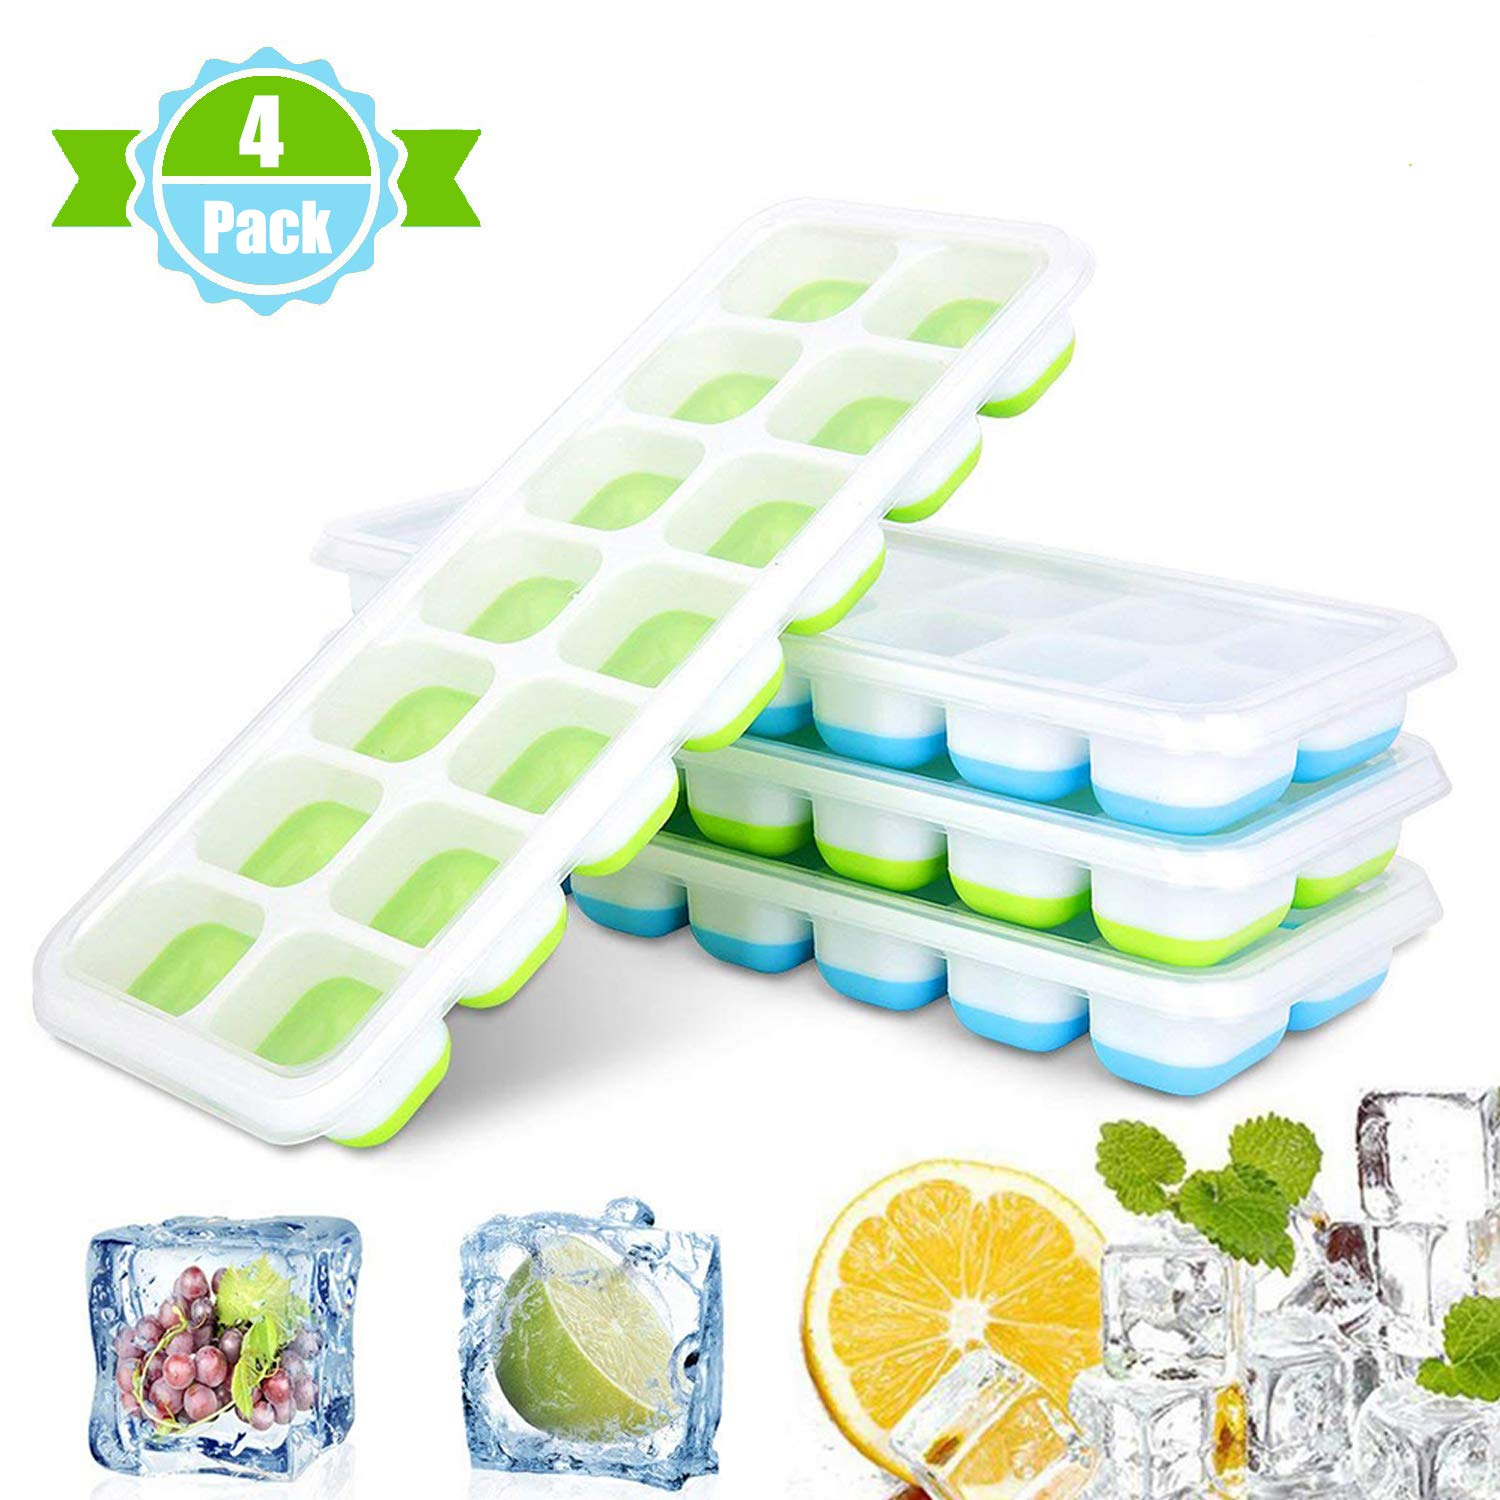 Ice Cube Trays, [4 Pack]Easy-Release Silicone and Flexible 14-Ice Trays with Spill-Resistant Removable Lid,FDA Approved/BPA-free Ice Cube Tray Set for Freezing Baby Food,Cocktails,Whiskey-Dishwasher Safe,(Blue & Green)